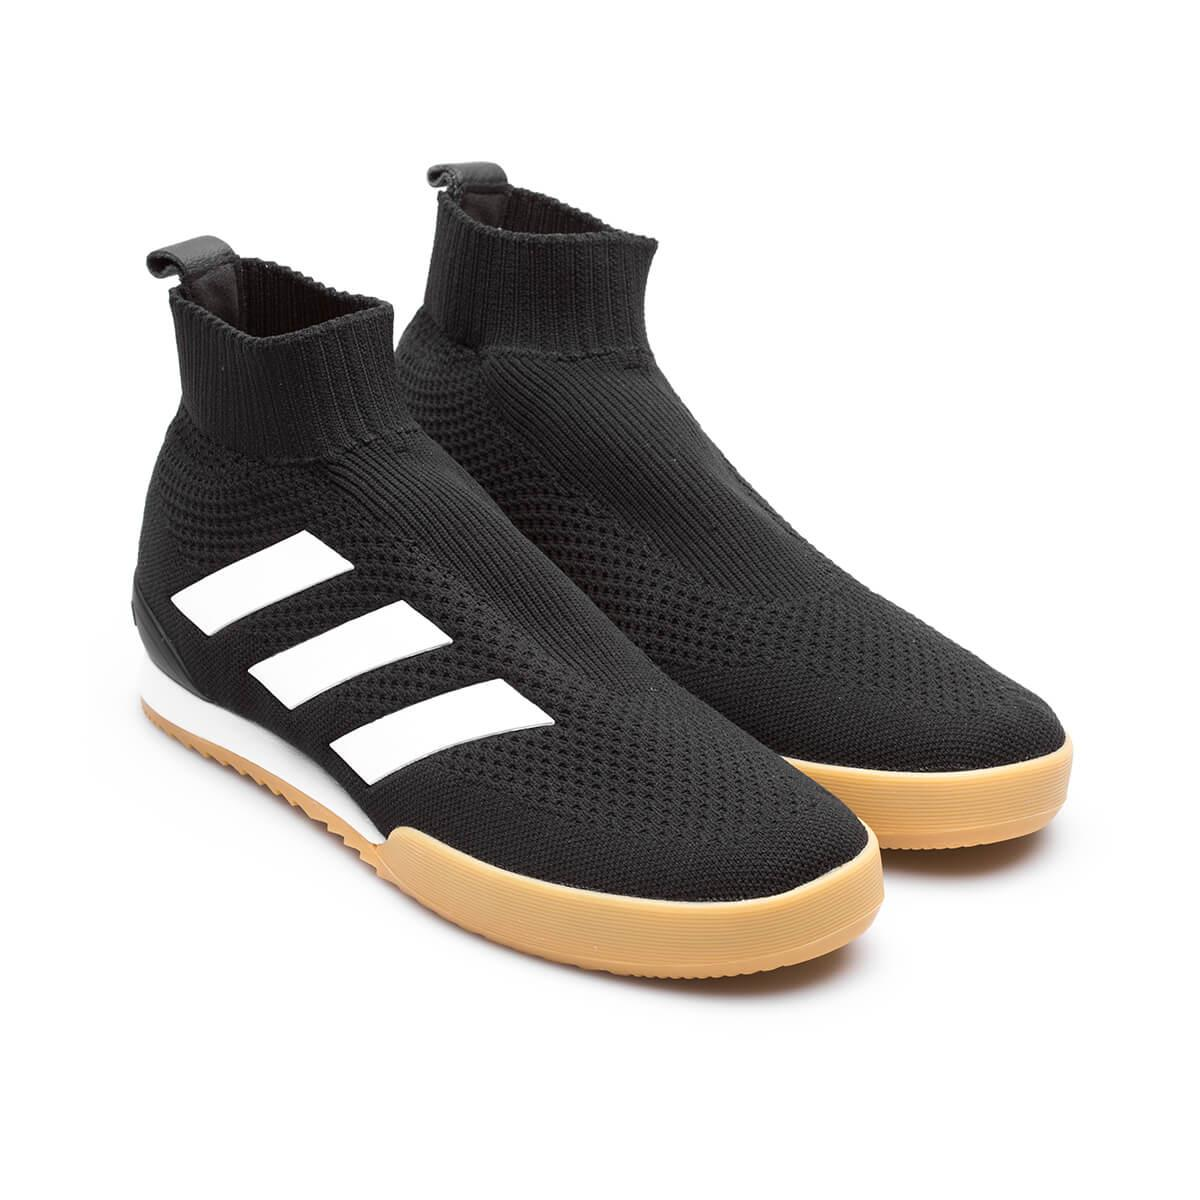 new concept e7951 38fef Gosha Rubchinskiy Scarpa X Adidas Ace 16+ Sneakers in Black